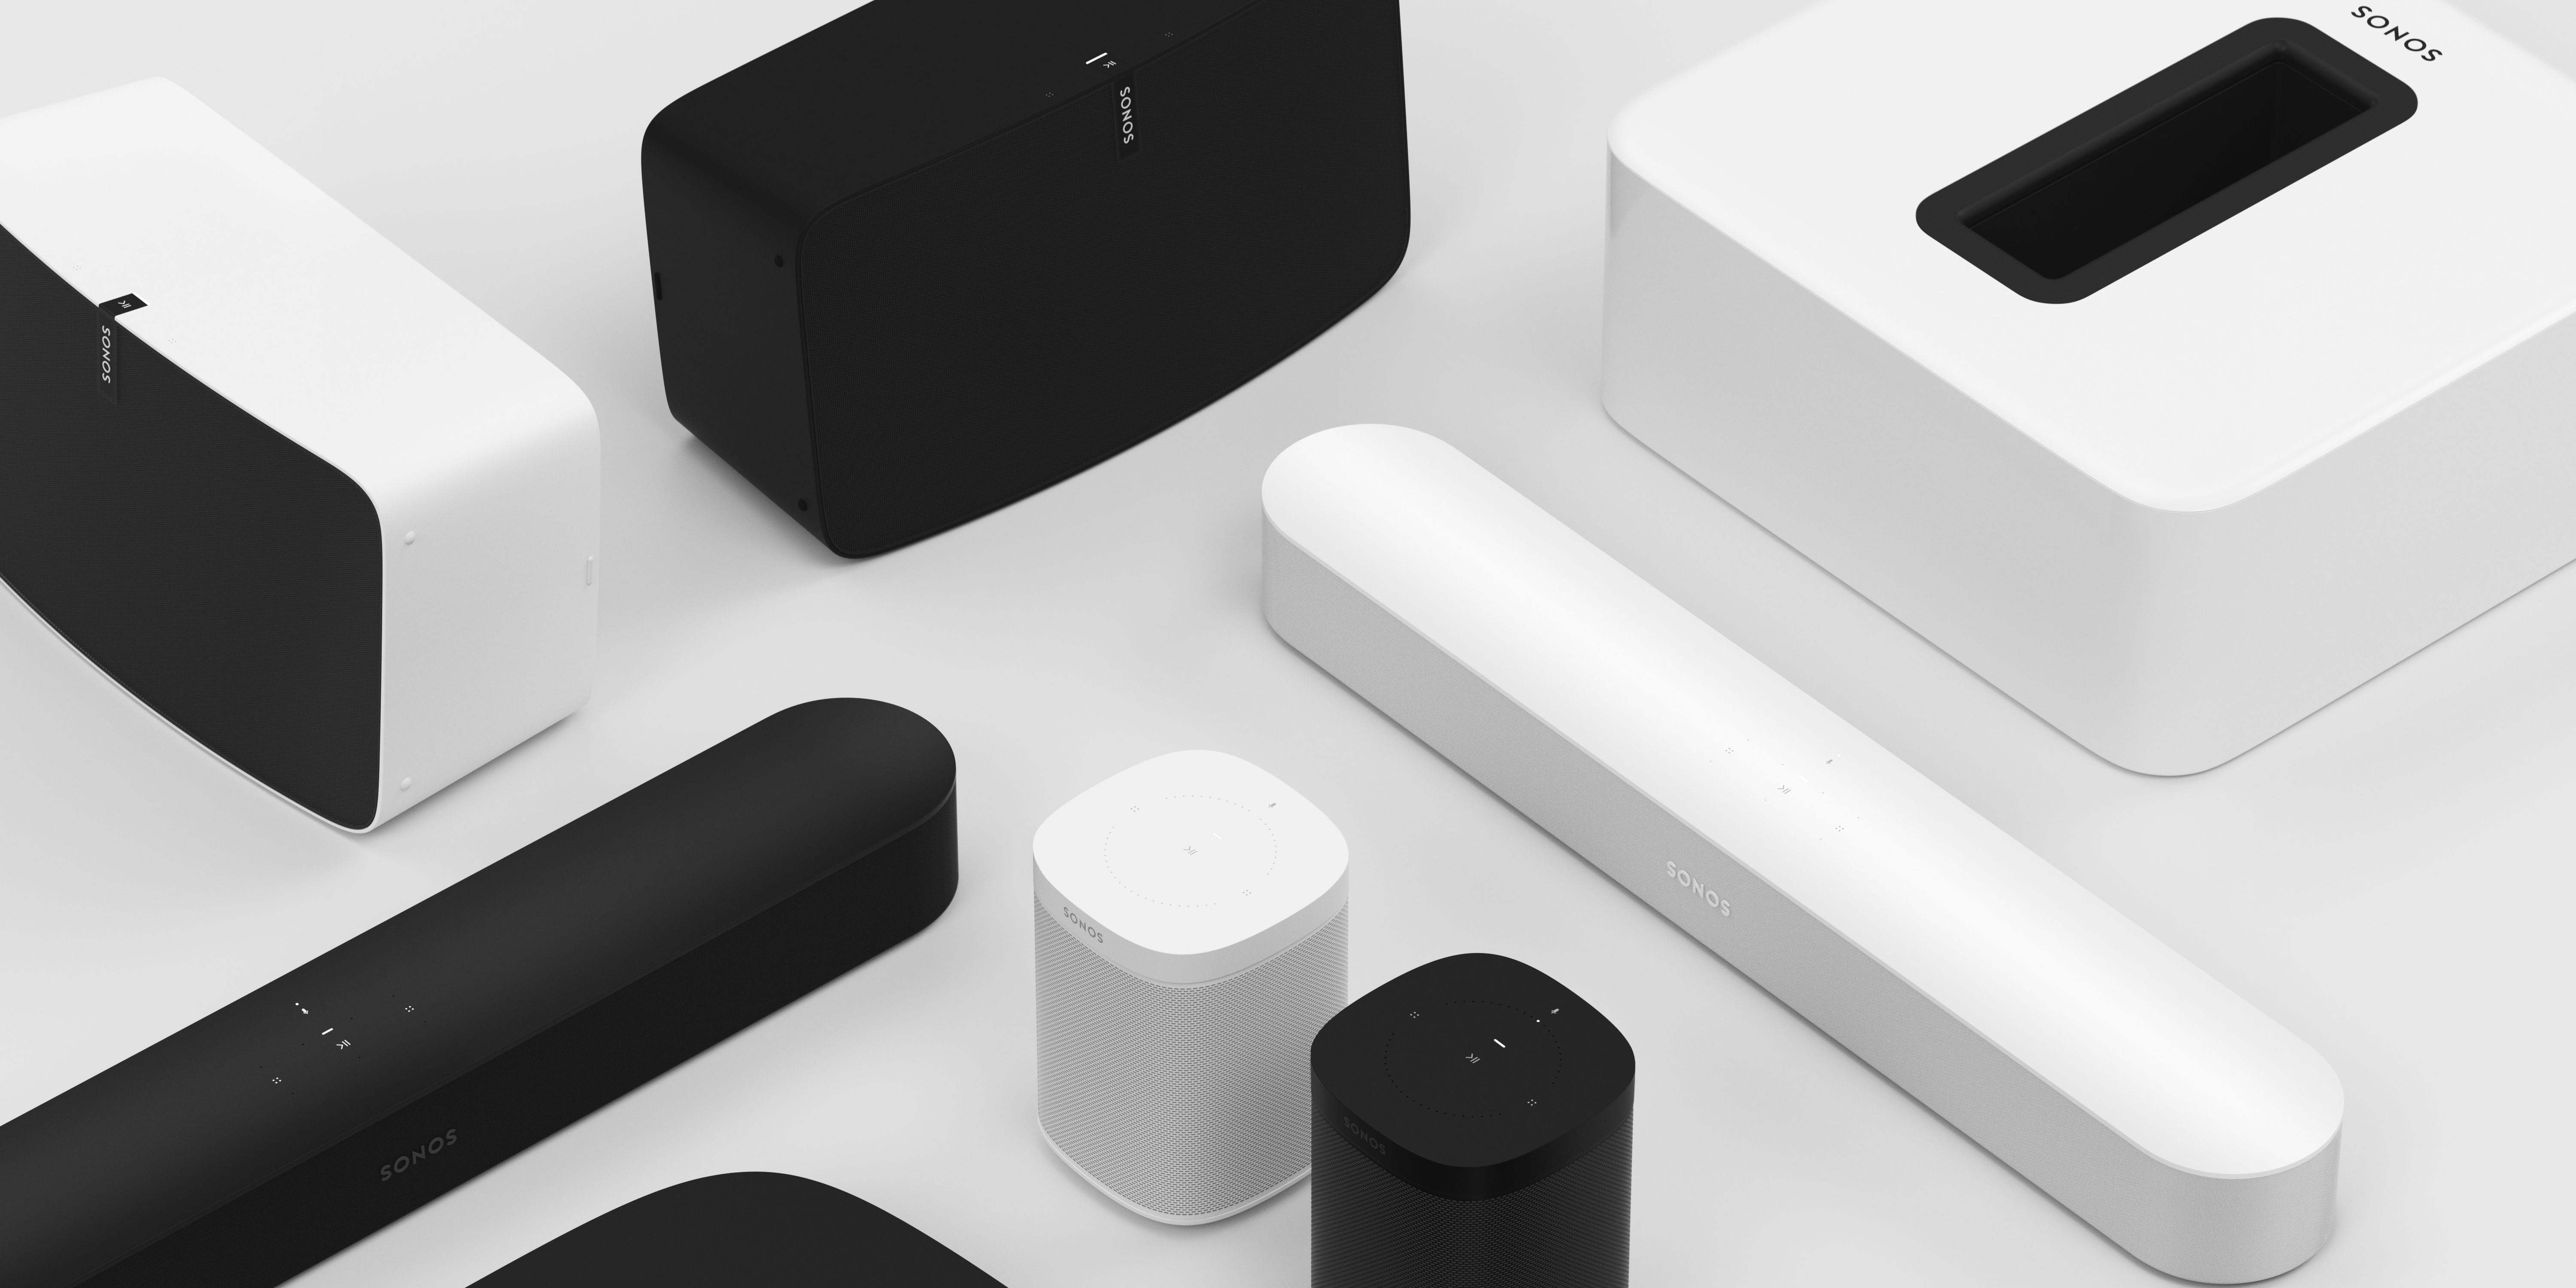 Sonos sale delivers 20% off and new all-time lows plus Samsung Gear and Chromecast deals